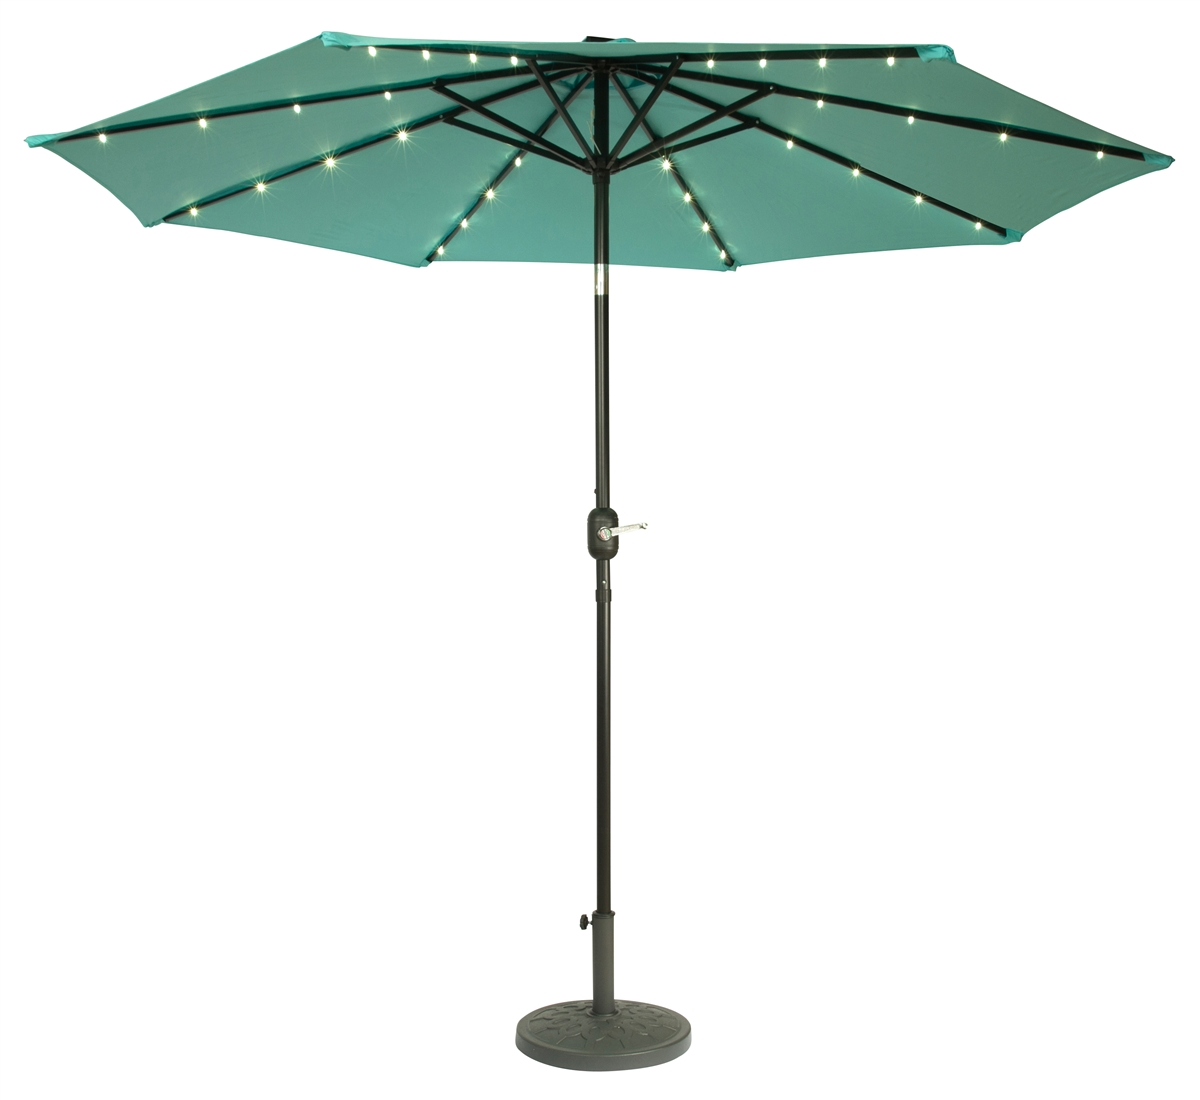 Merveilleux 9u0027 Deluxe Solar Powered LED Lighted Patio Umbrella By Trademark Innovations  (Teal)